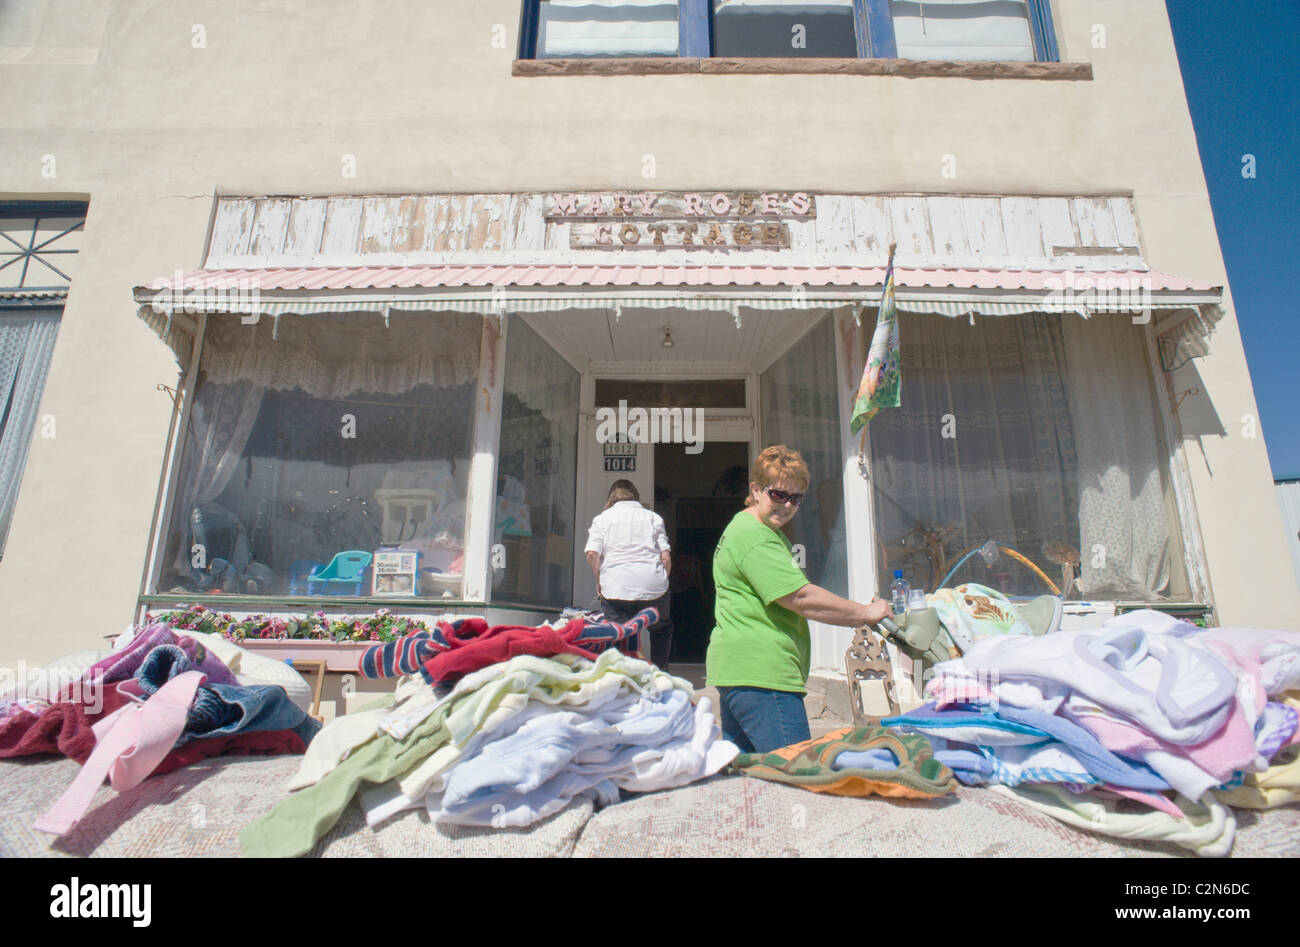 A woman pushing a baby stroller (pram) looks over the goods at a small town rummage sale (jumble sale), in Carrizozo, - Stock Image